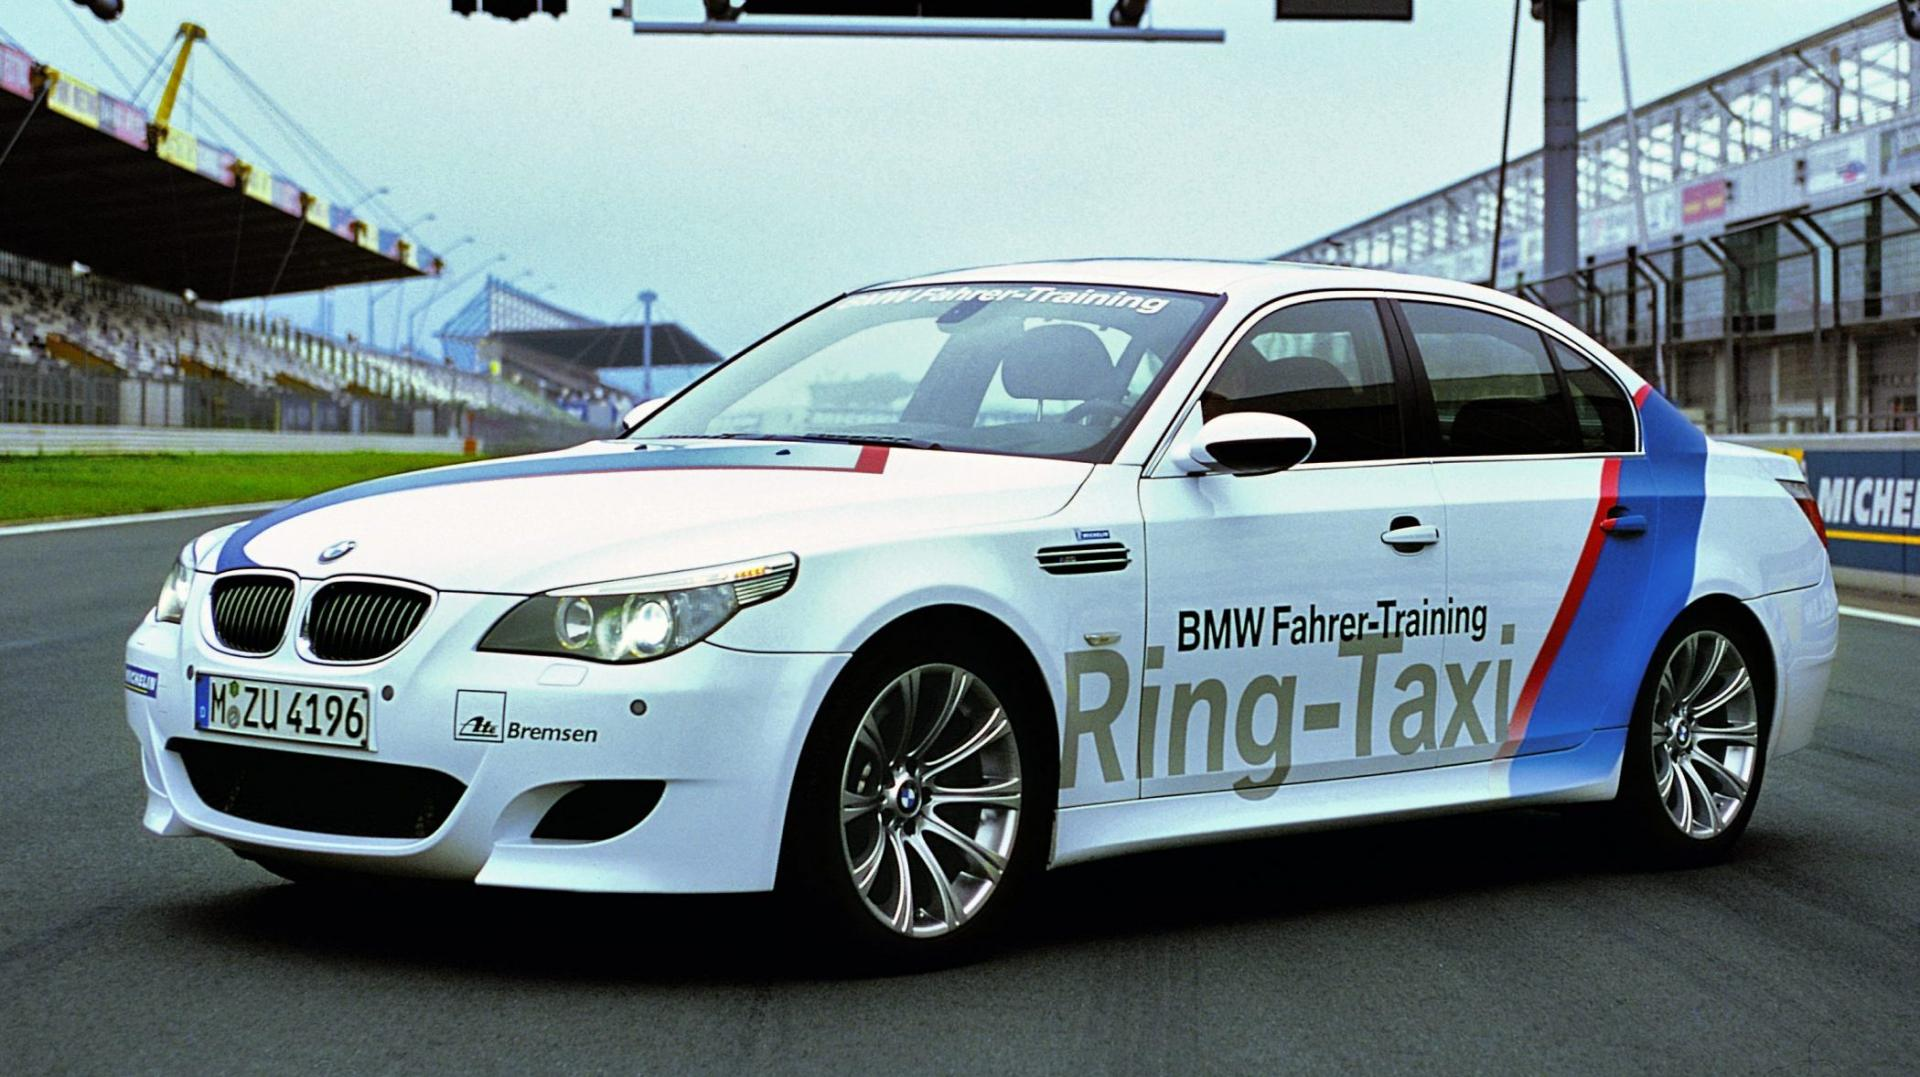 BMW M5 Ring-Taxi E60